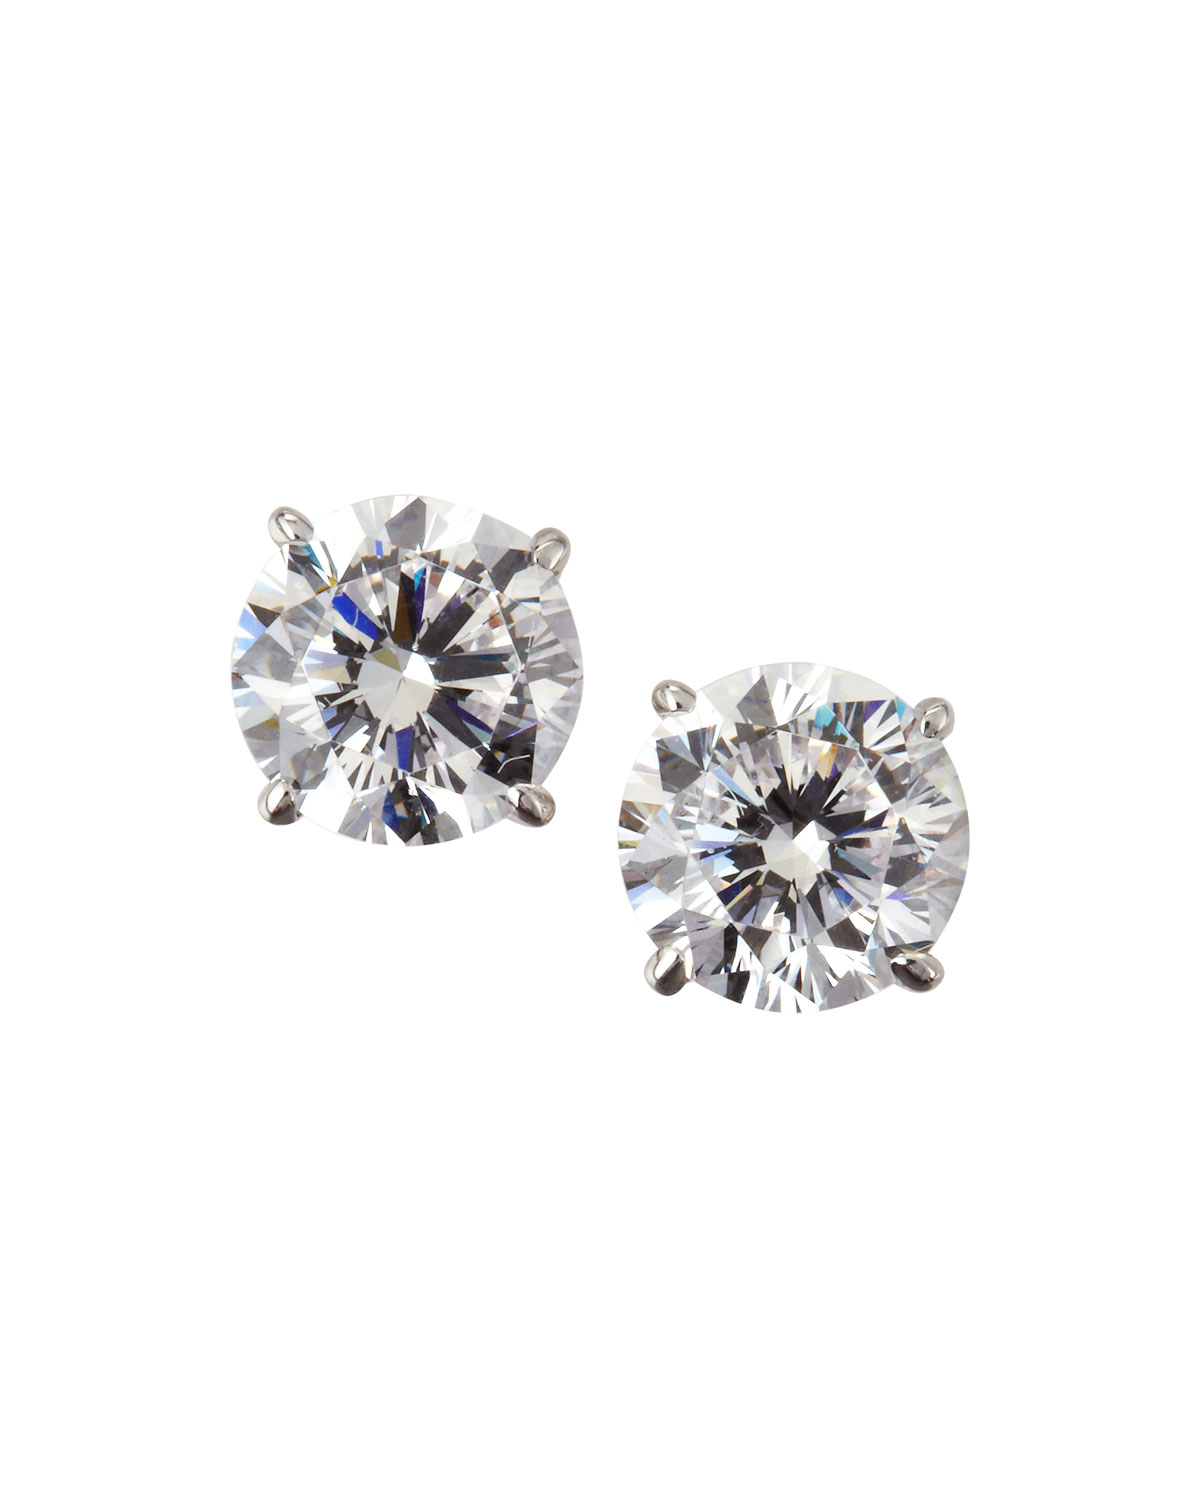 14k White Gold Cubic Zirconia Stud Earrings 2 0 Tcw